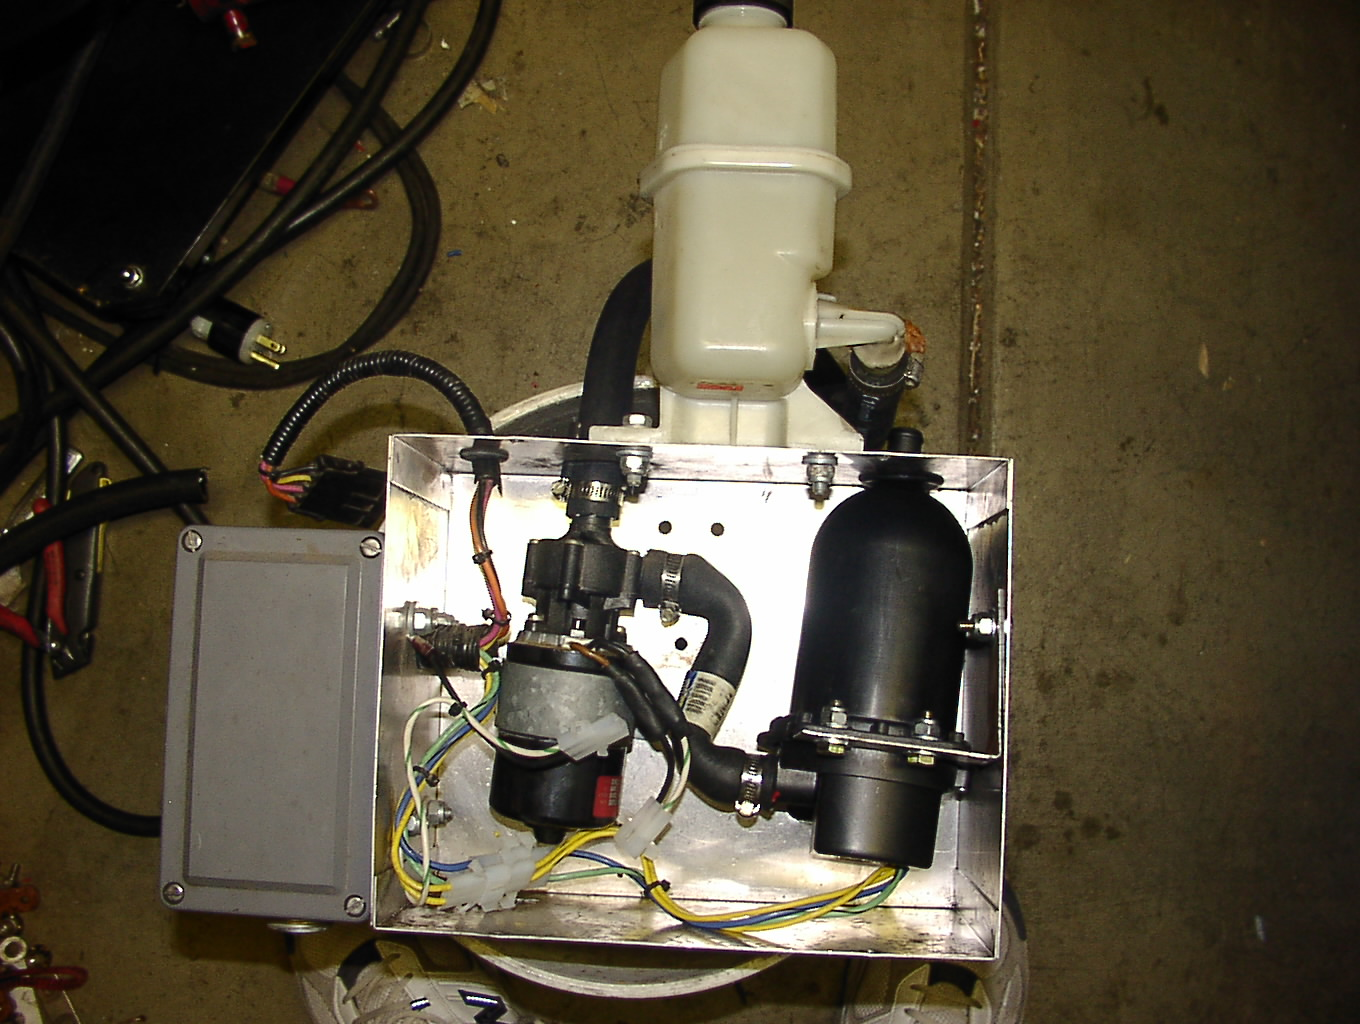 Complete view of heater box with Hotstart heater and pump.